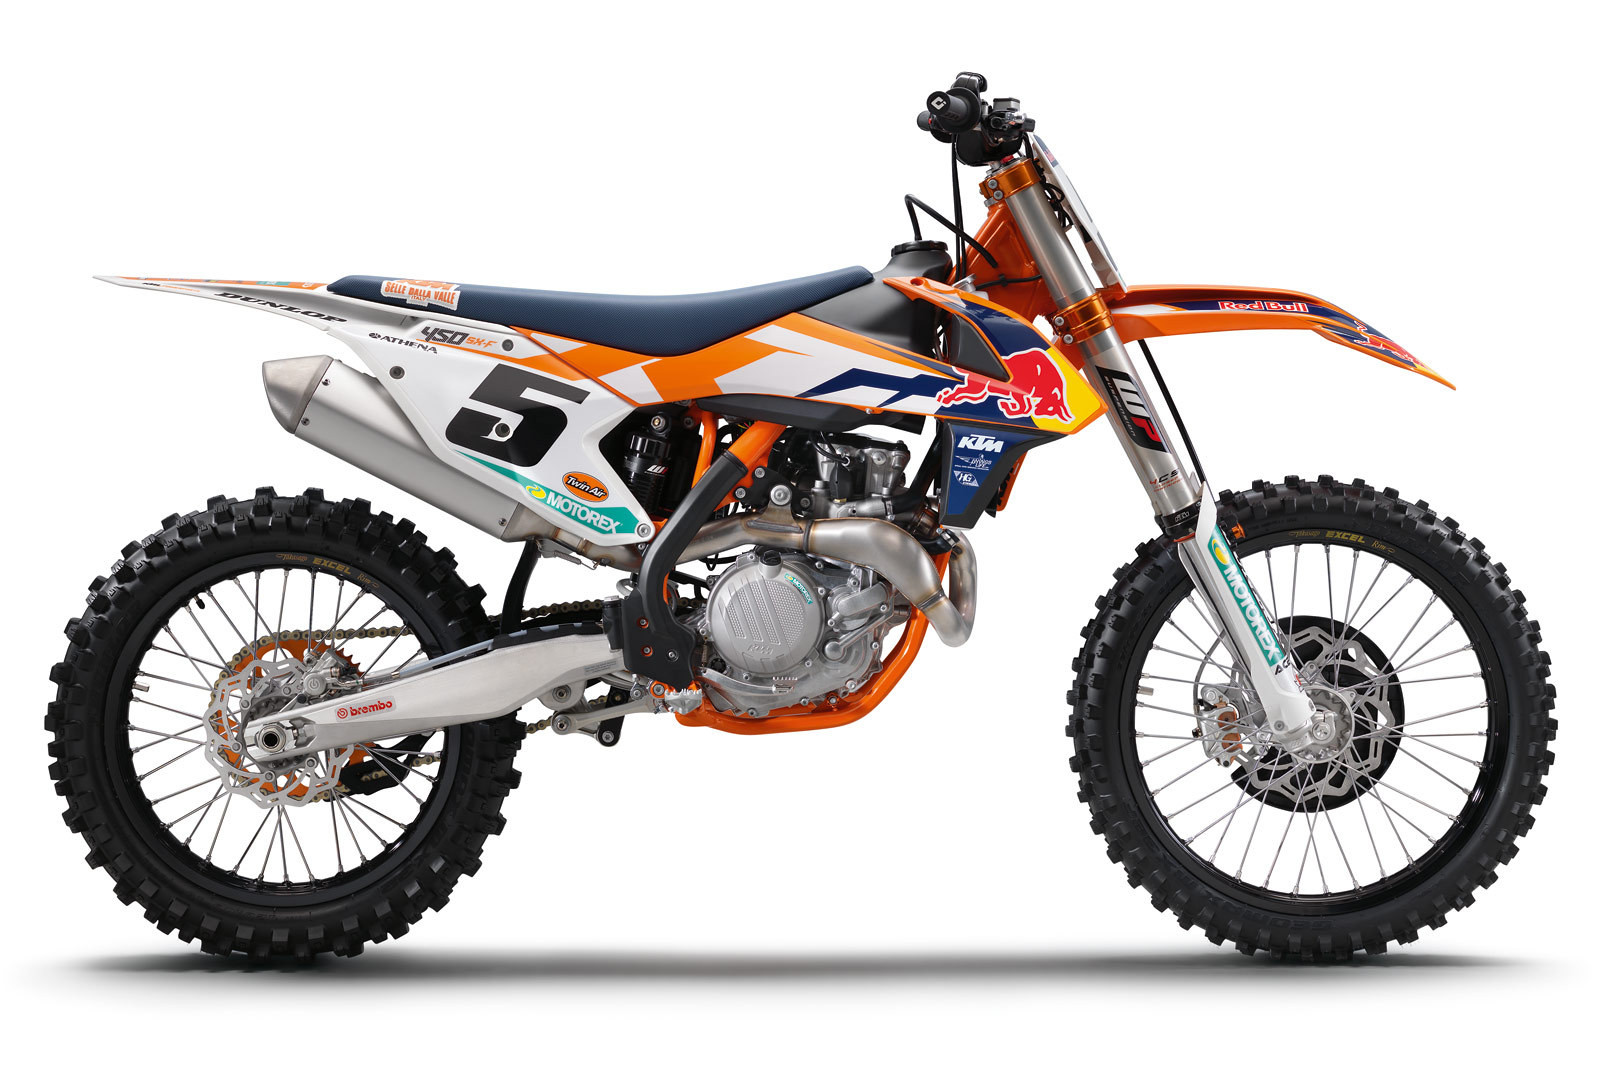 2015 KTM SX-F Factory Editions - First Look: 2015 KTM 250 and 450 SX-F Factory Editions - Motocross Pictures - Vital MX